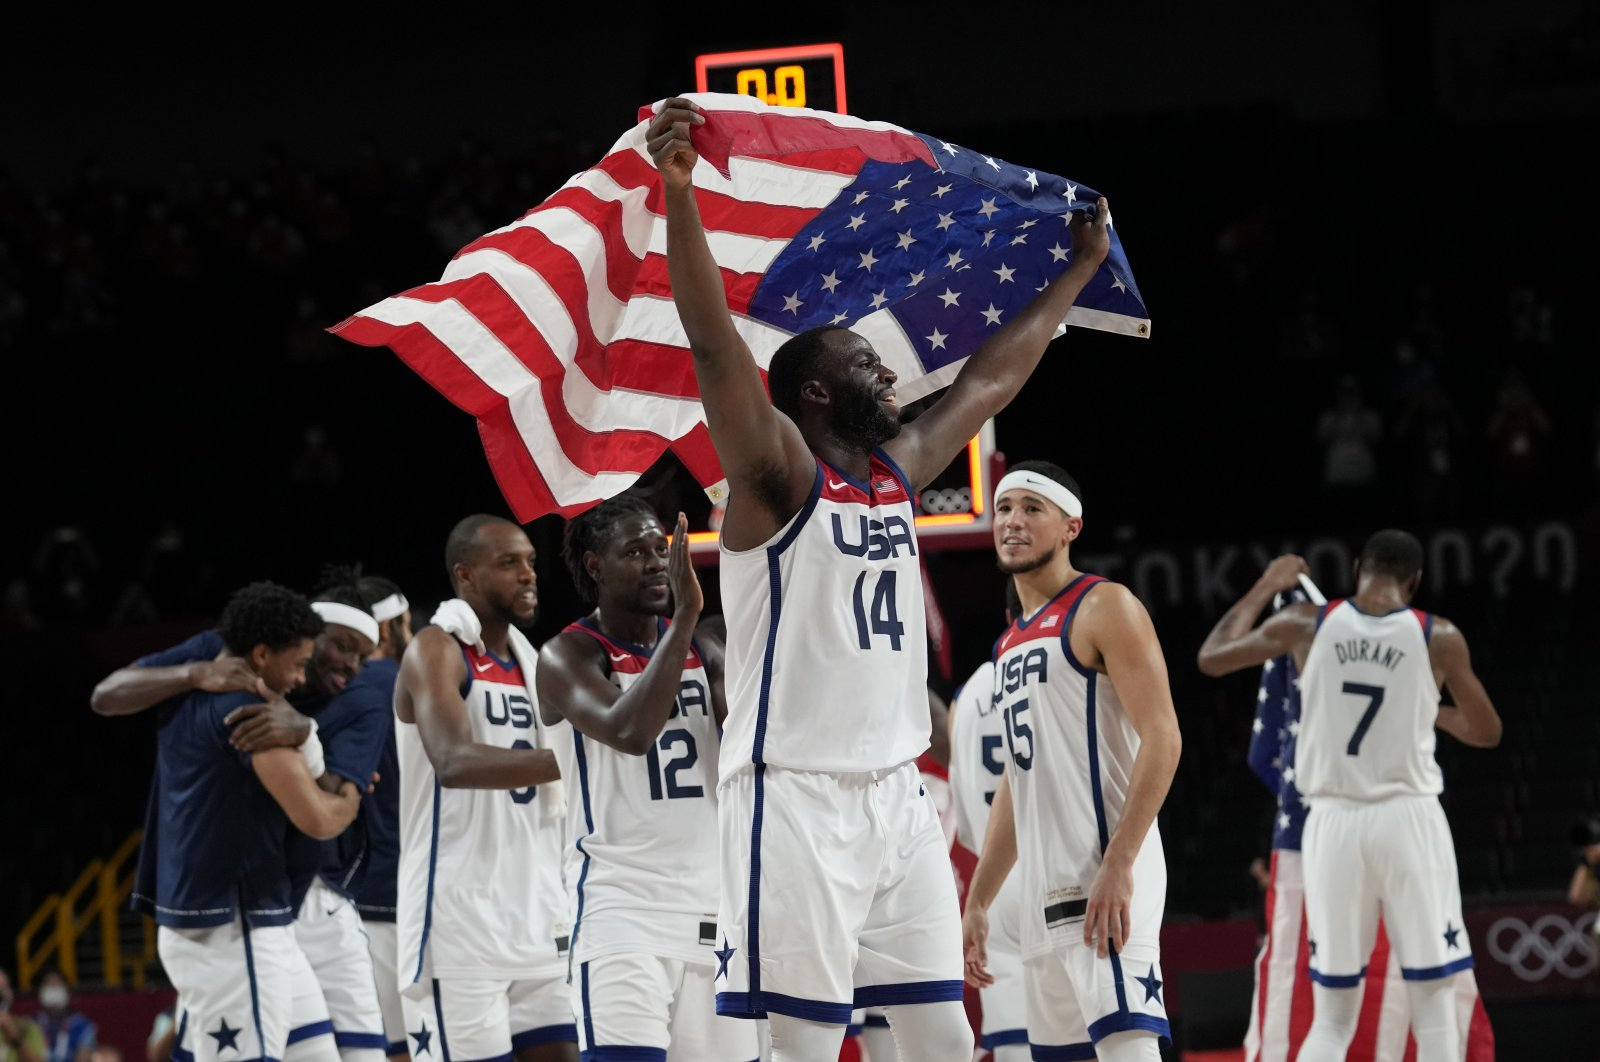 United States' players celebrate after their win in the men's basketball gold medal game against France at the 2020 Summer Olympics in Saitama, Japan, Aug. 7, 2021. (AP Photo)